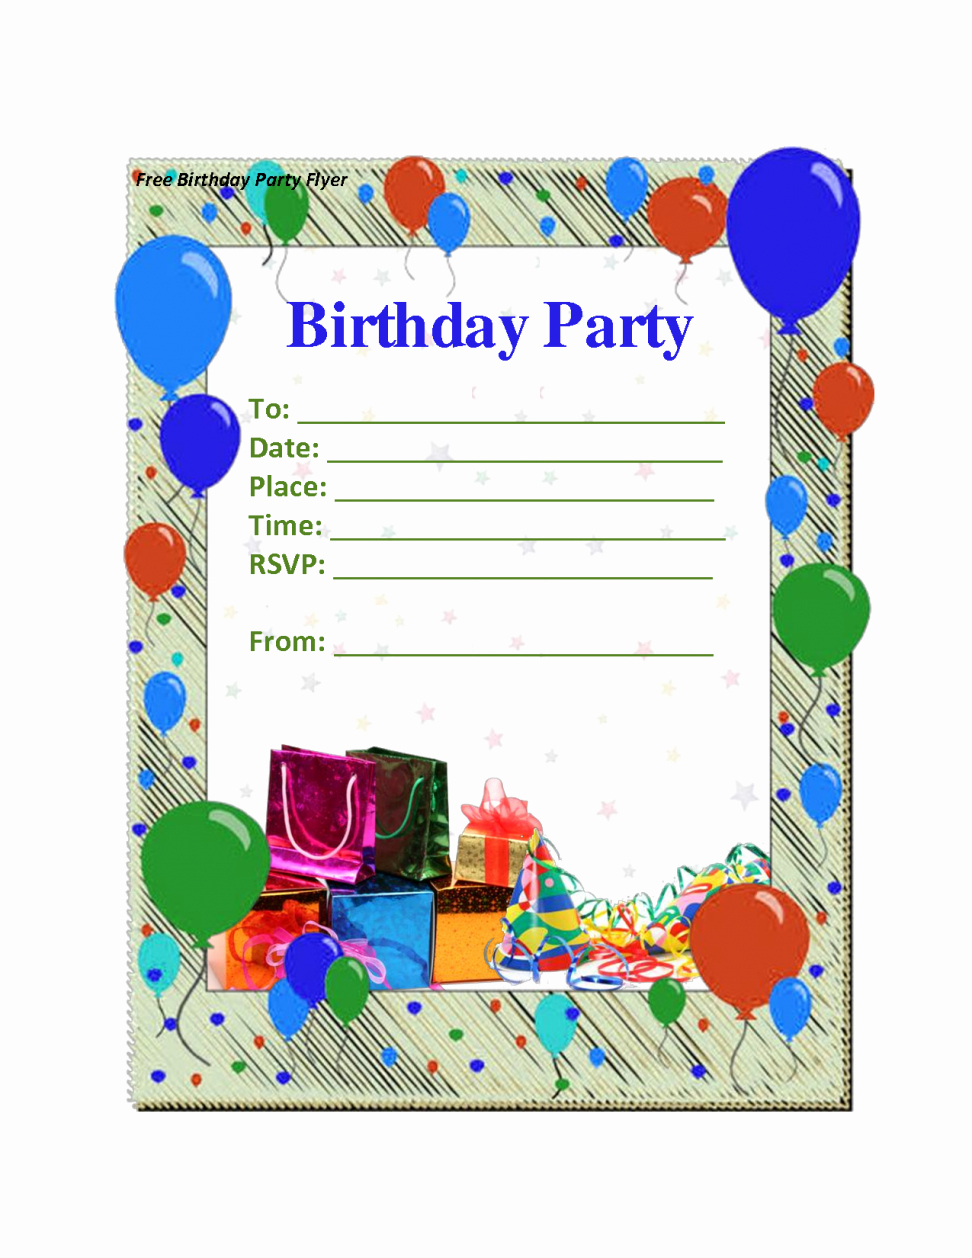 Birthday Party Invitation Card Template Unique Free Printable Kids Birthday Party Invitations Templates